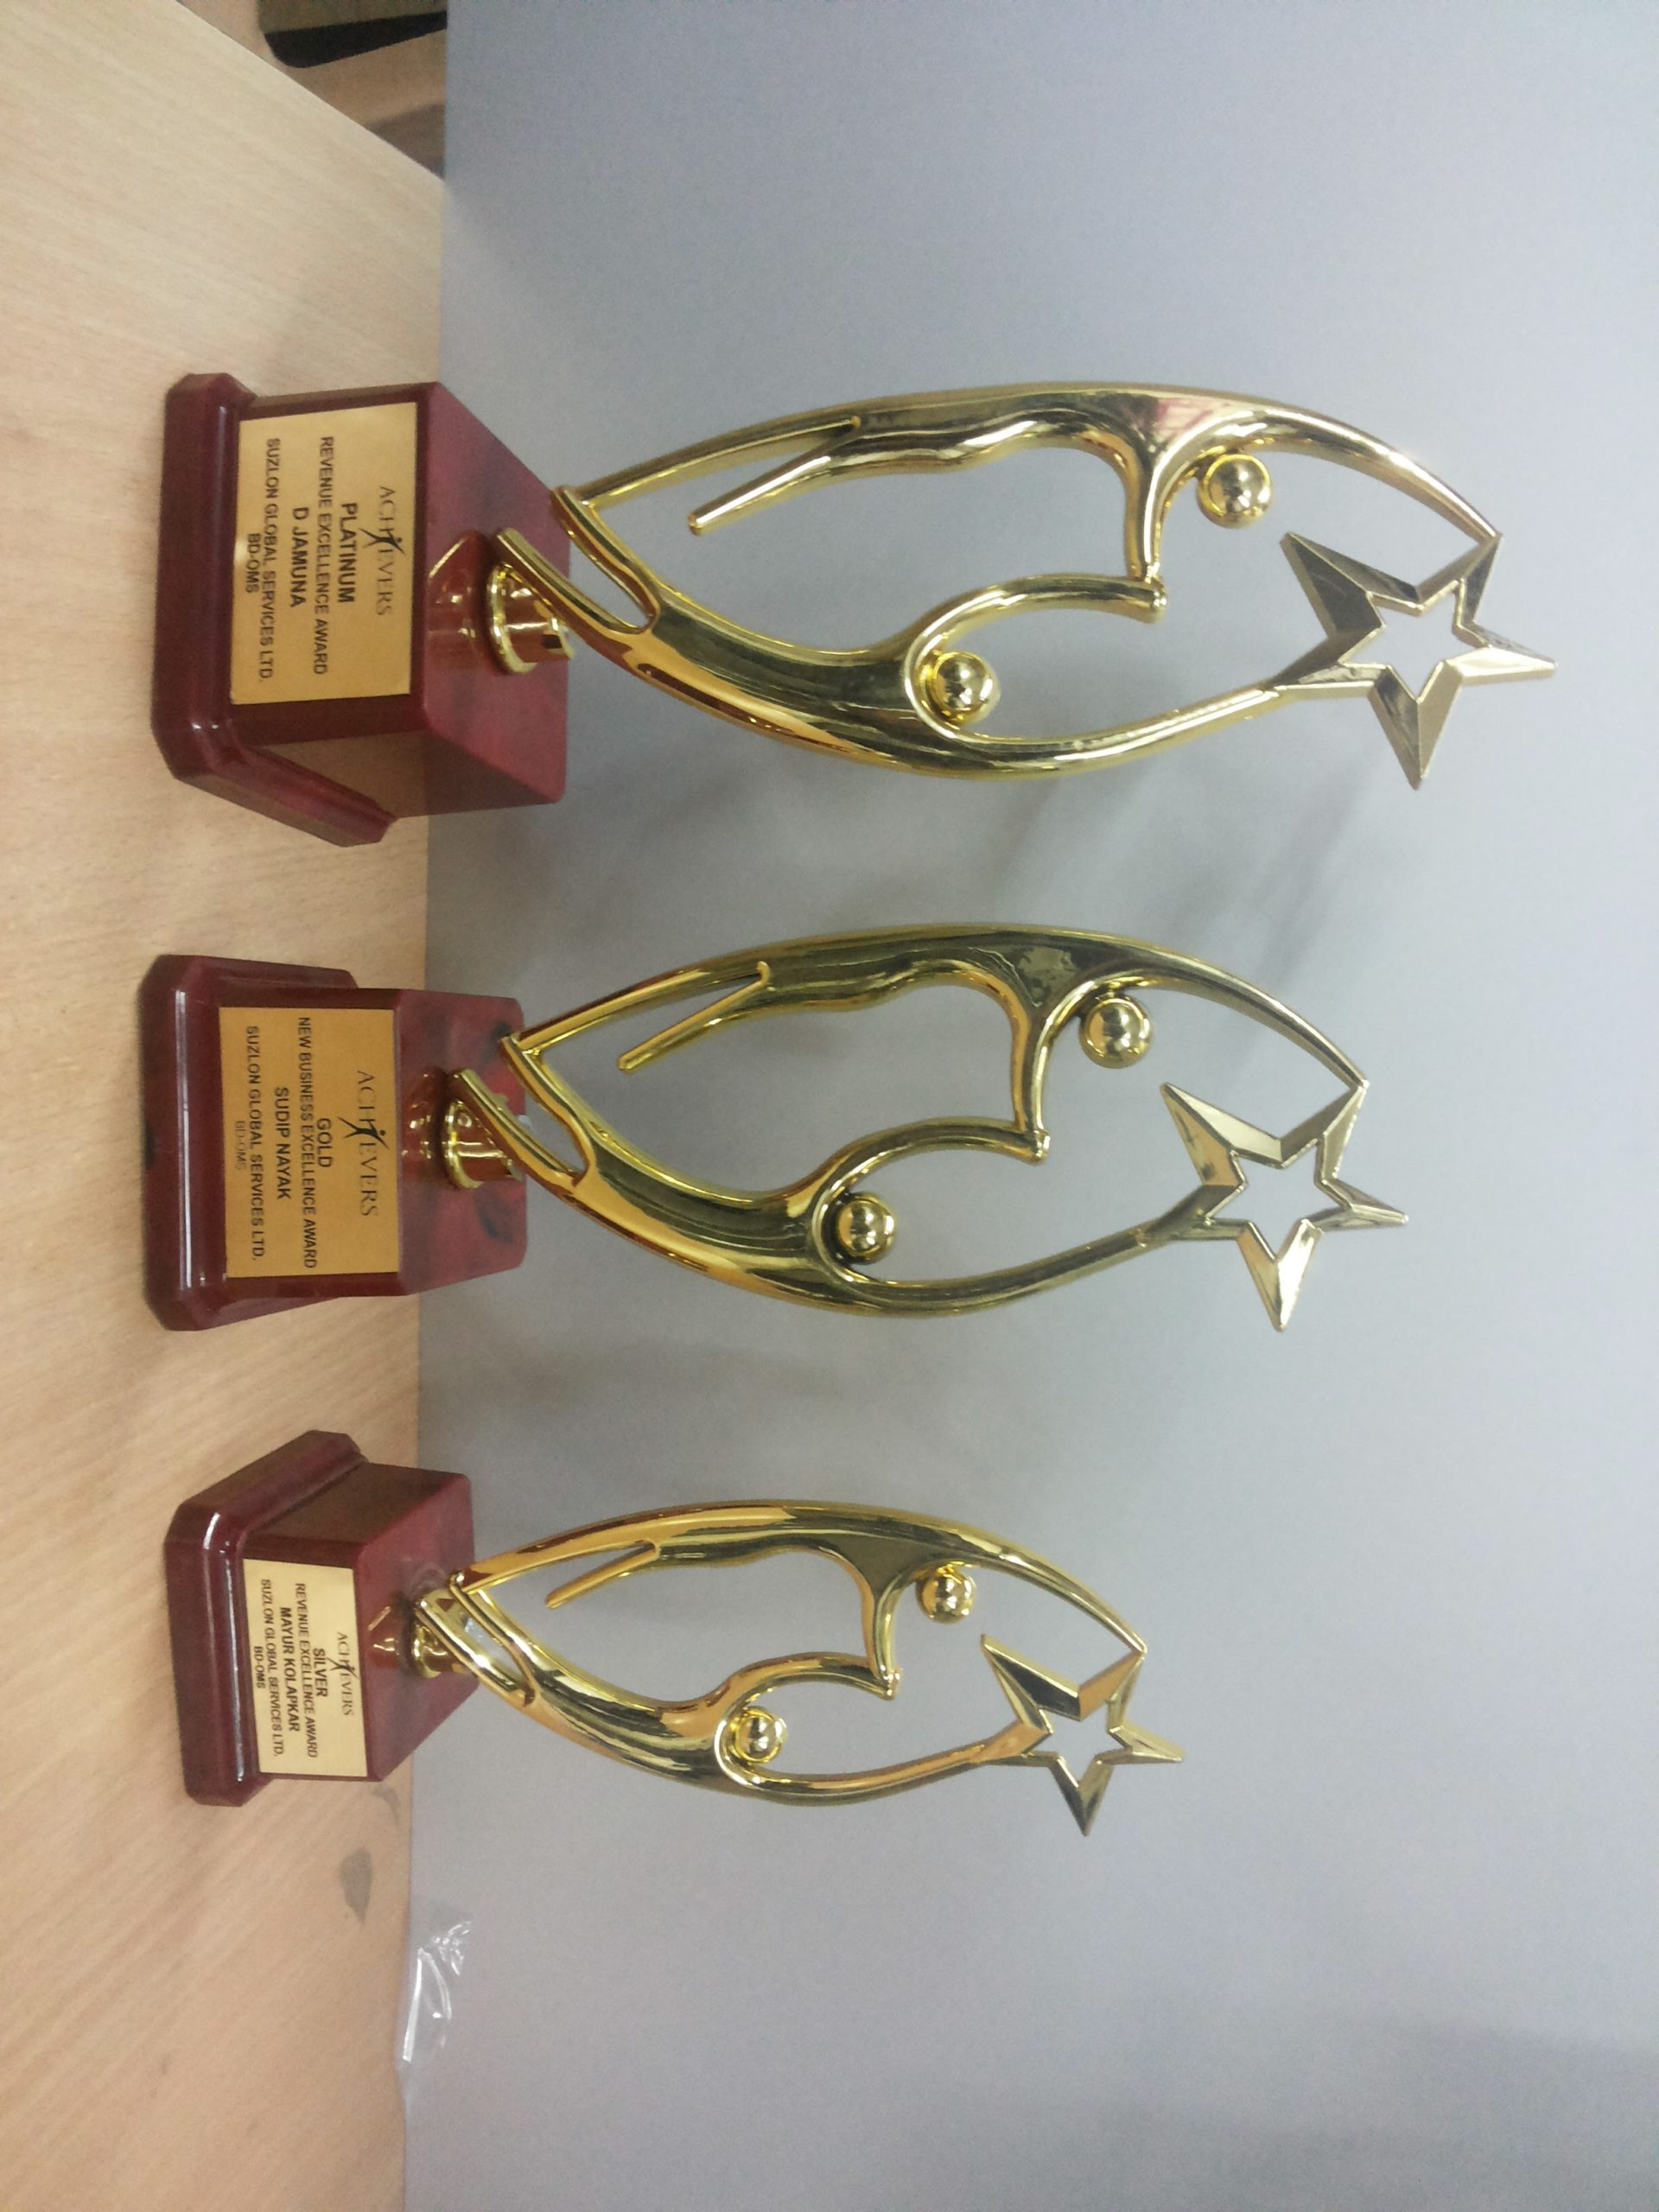 Awards in custom shapes and sizes